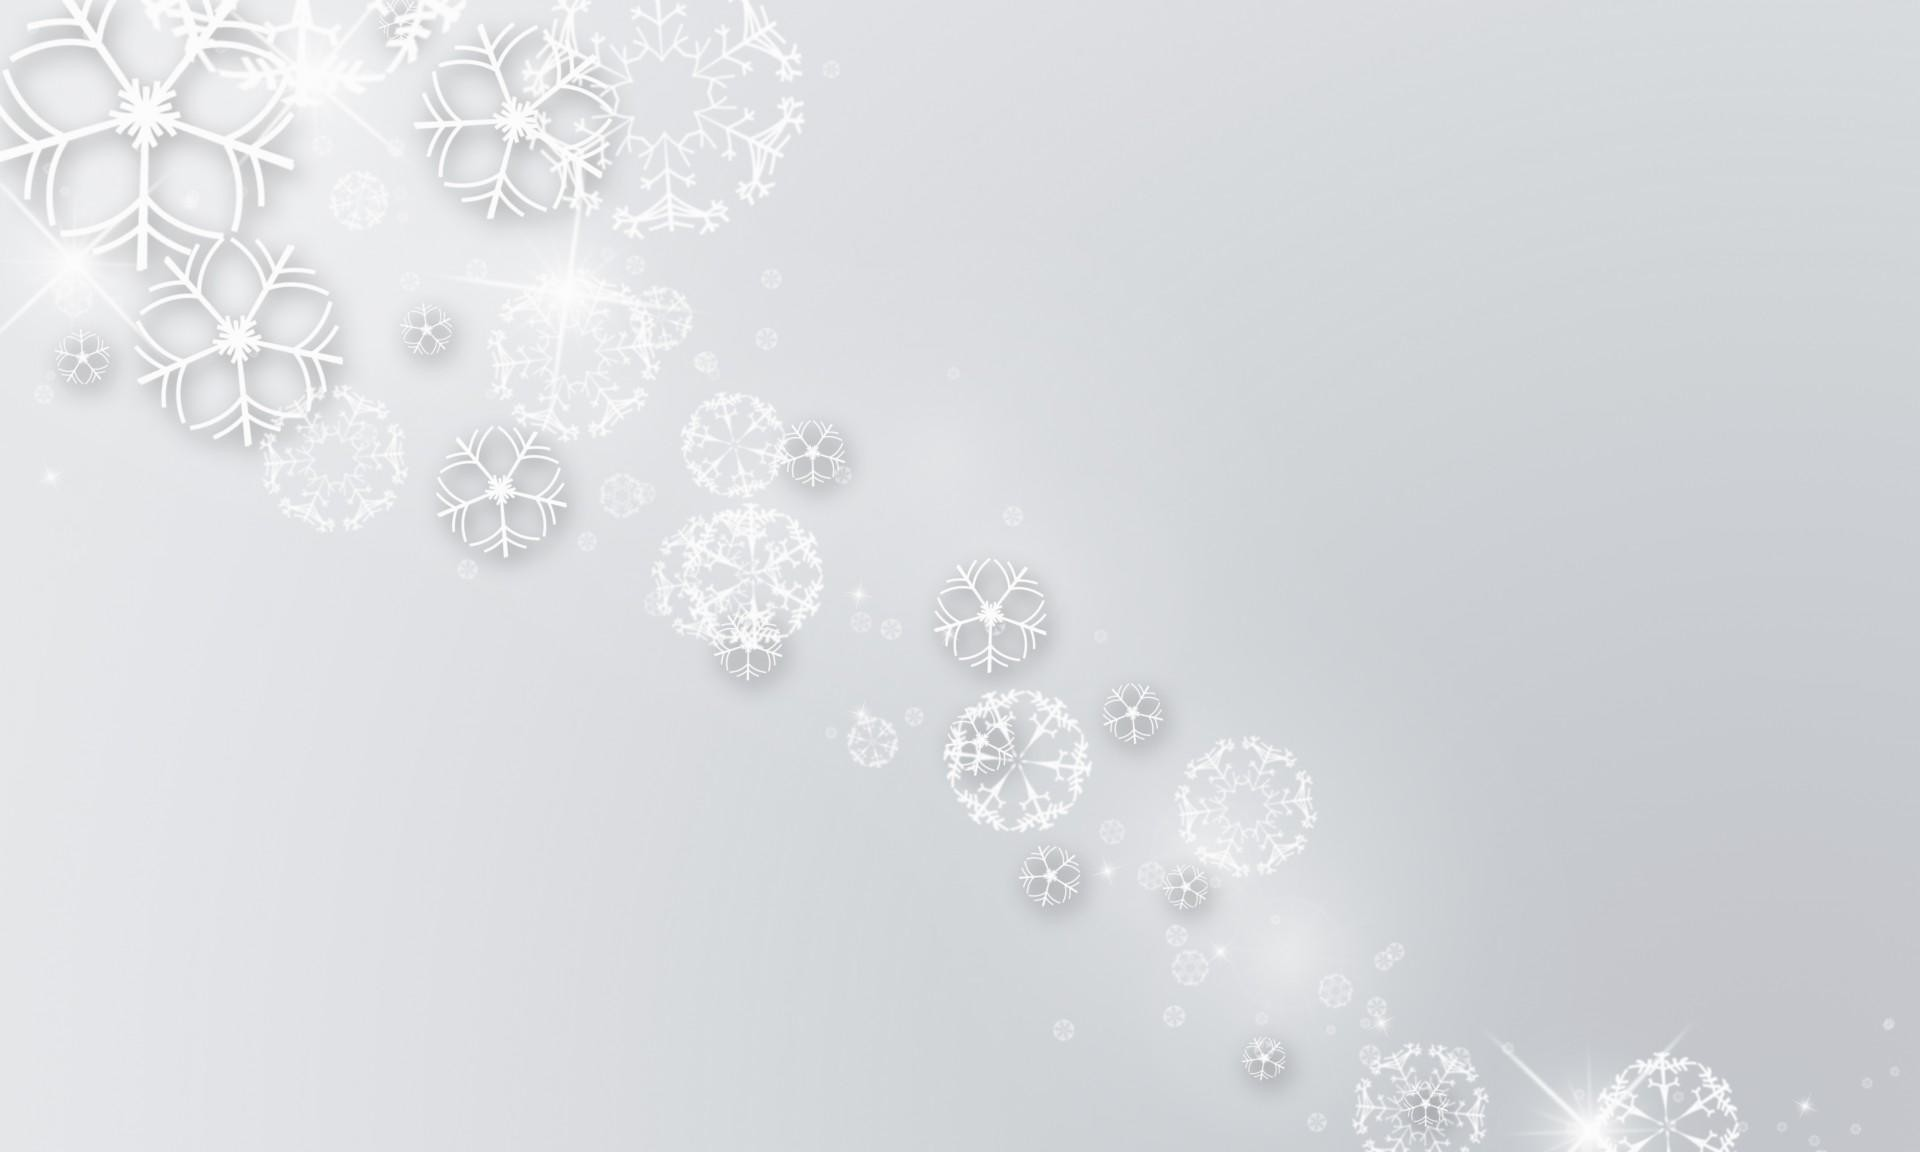 Backgrounds-silver-christmas-wallpaper-1